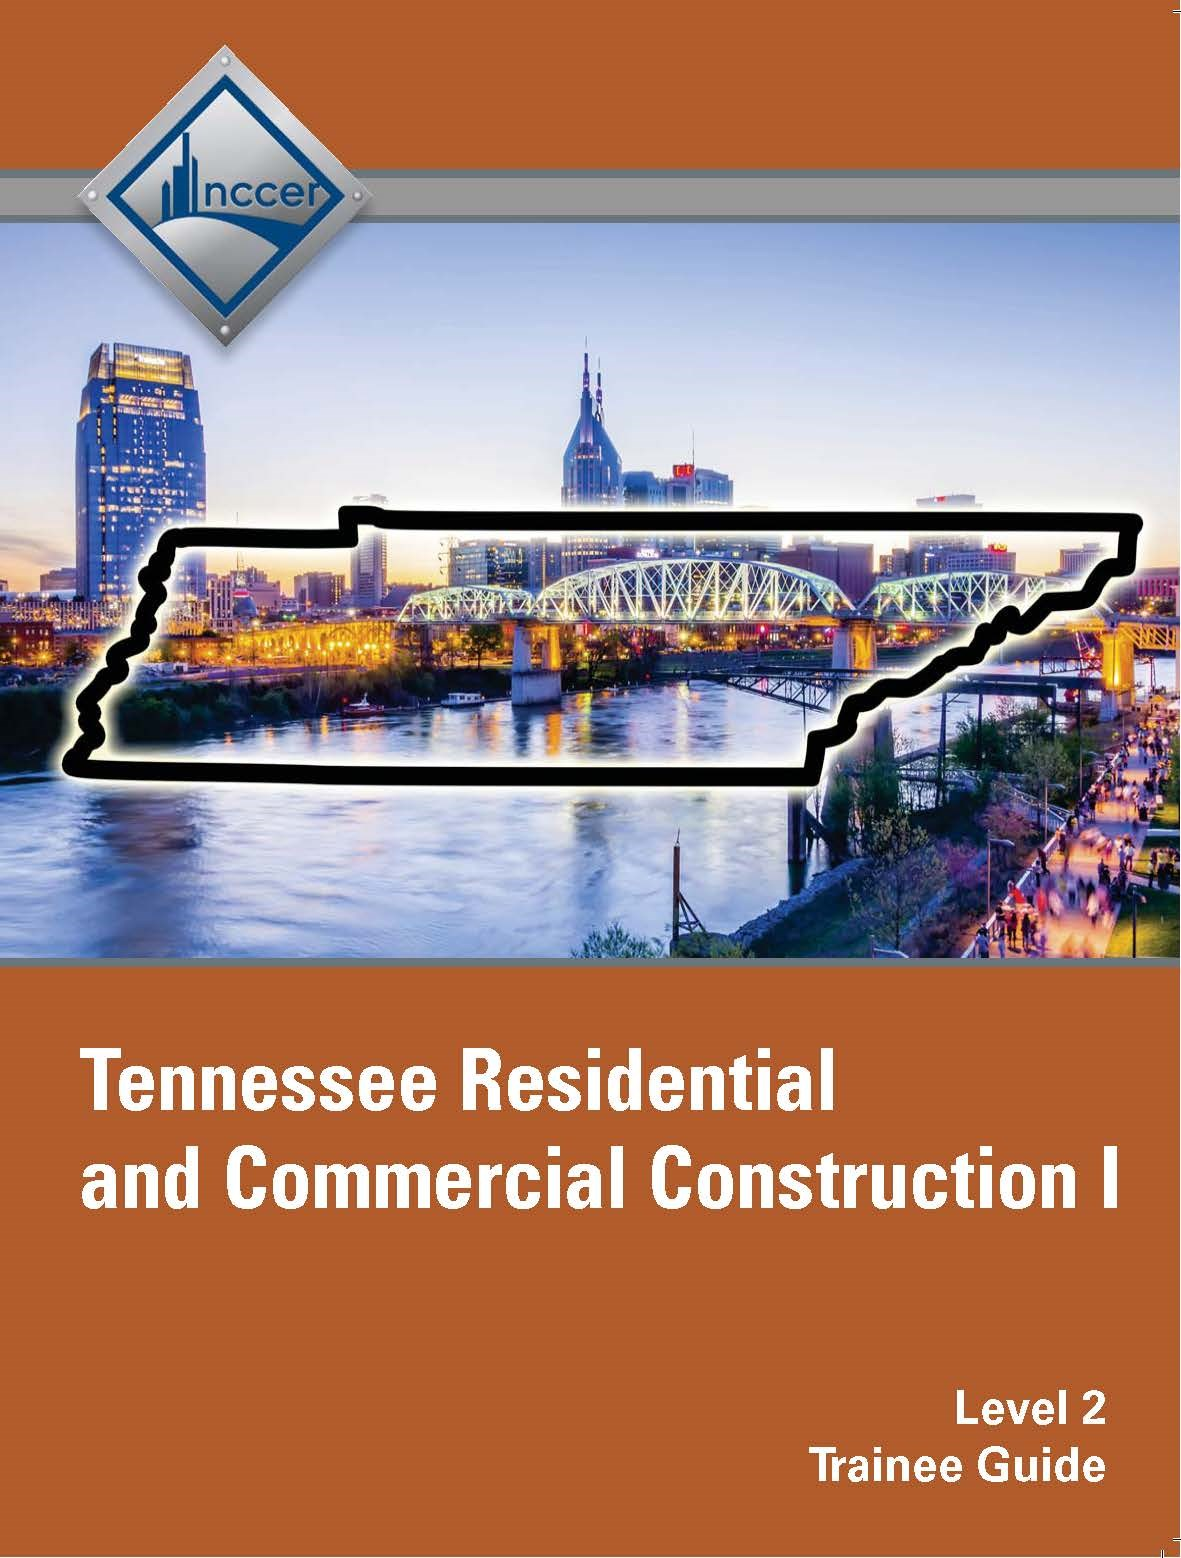 Tennessee Residential and Commercial Construction I (Level 2) Trainee Guide